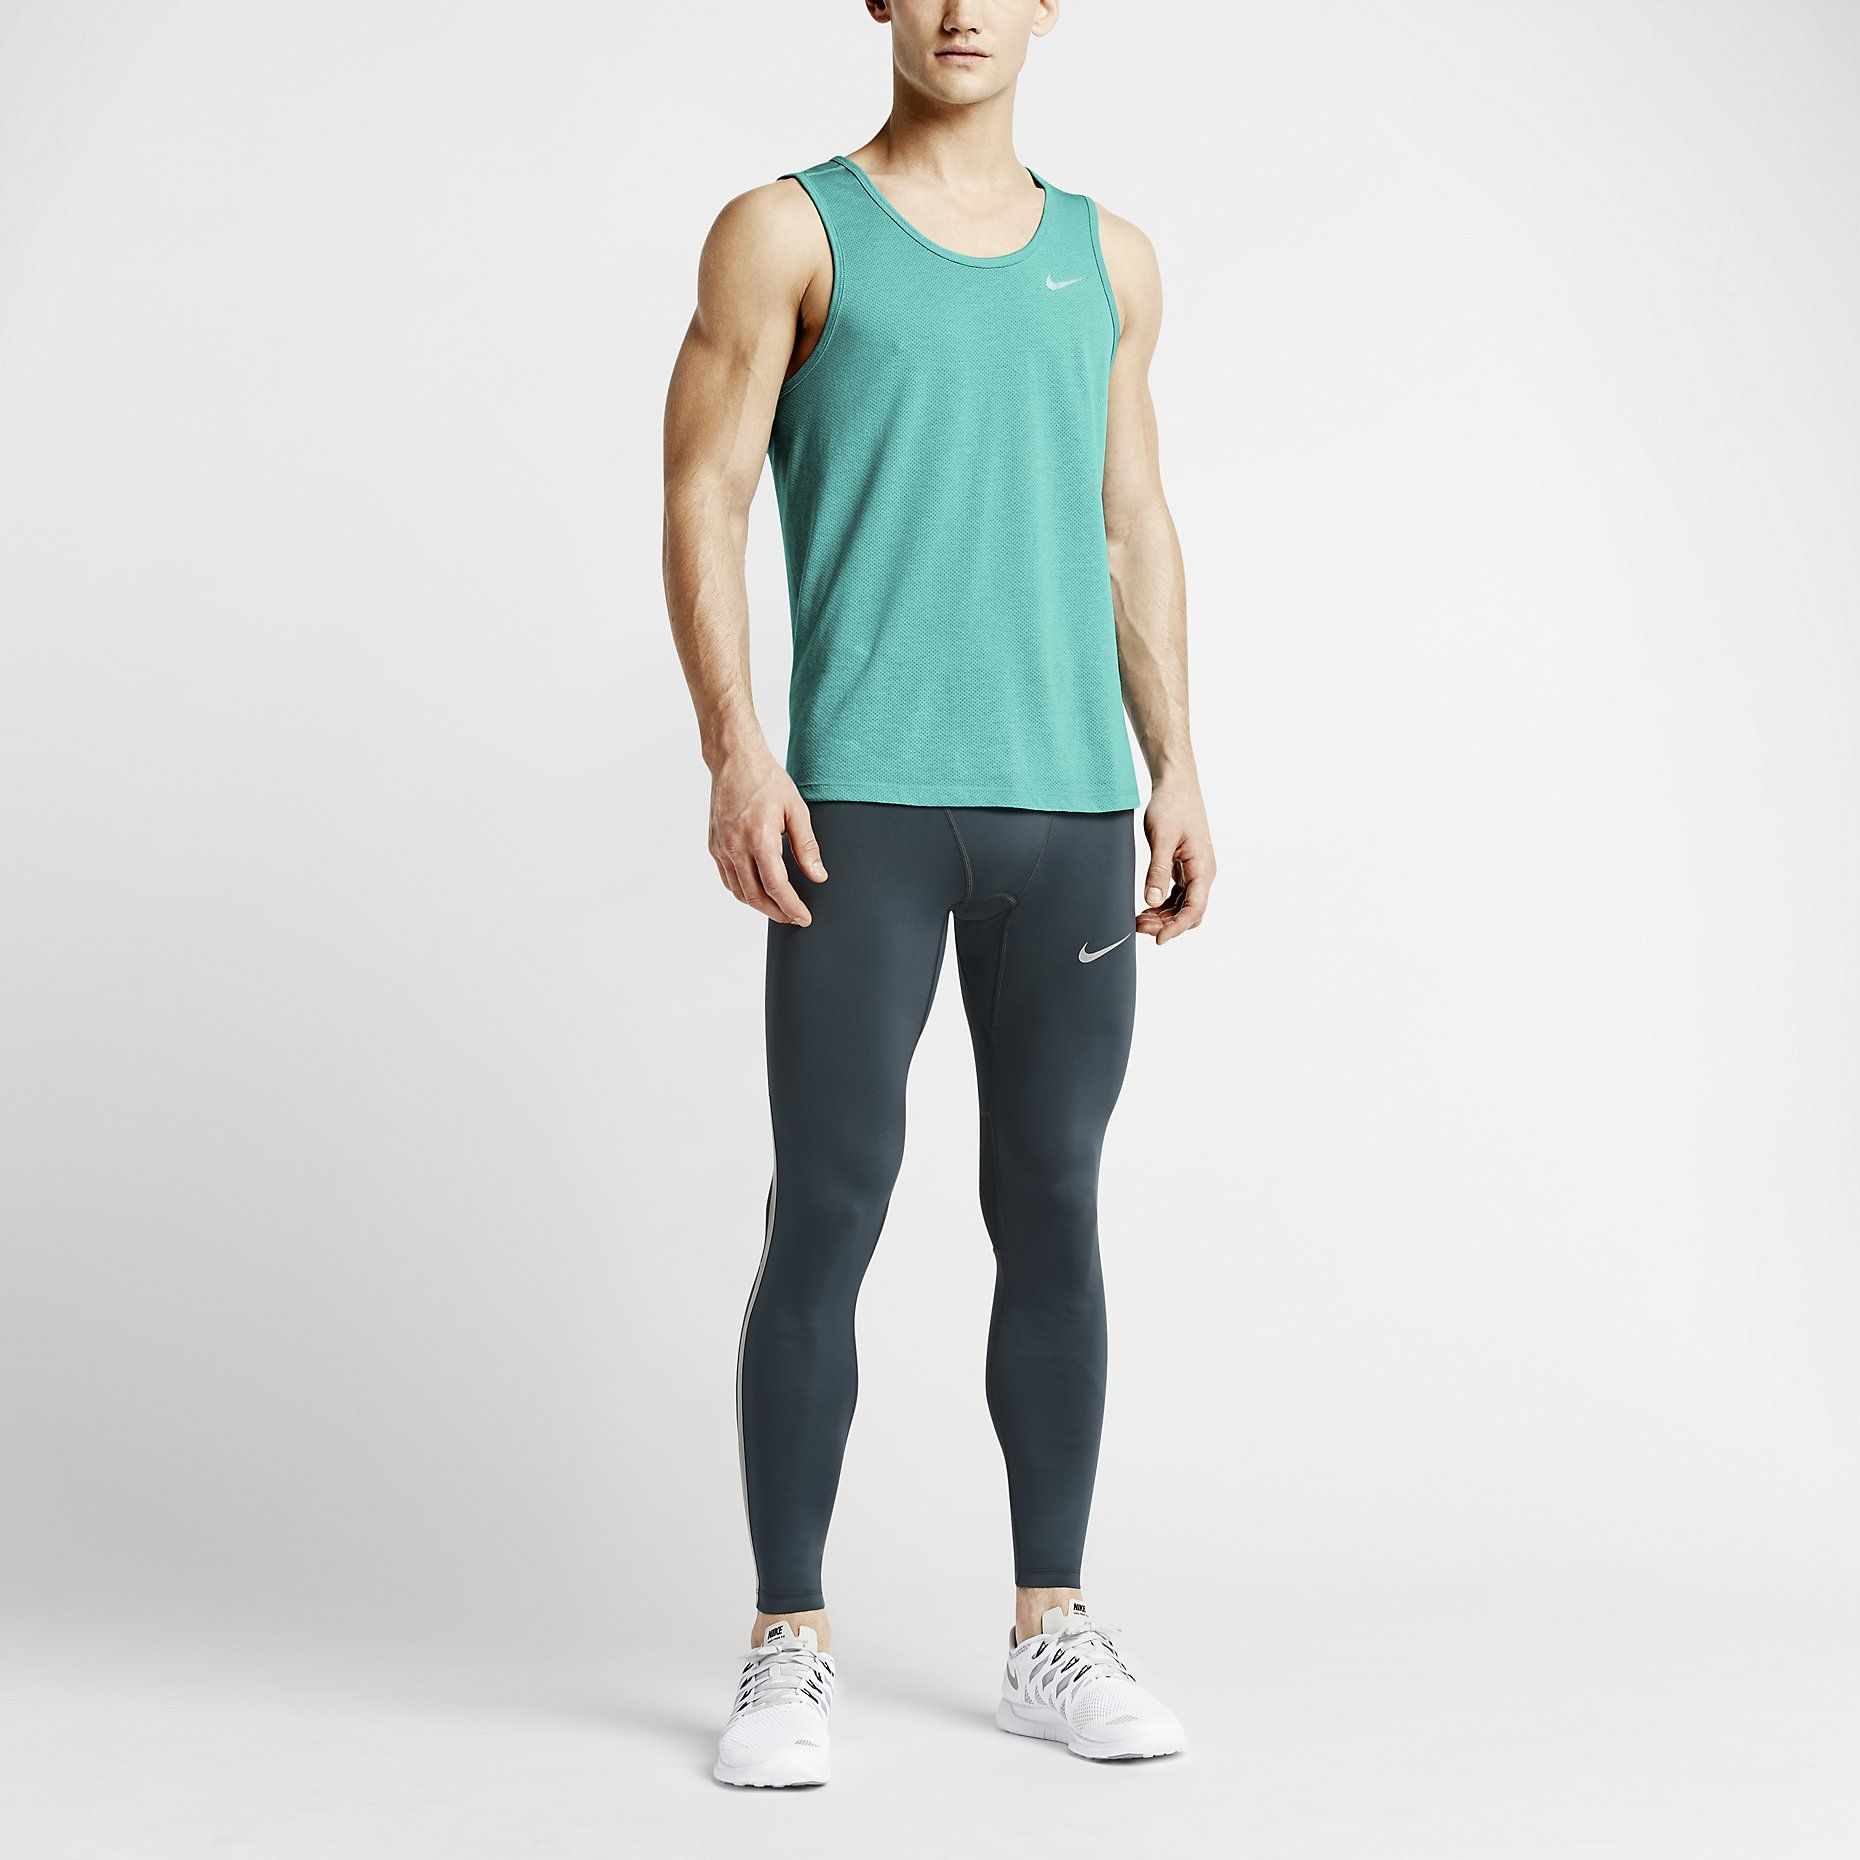 fa0c13cd9c9c80 Nike Dri-FIT Cool Tailwind Herren Lauf-Tanktop. Nike Store DE Mens Athletic